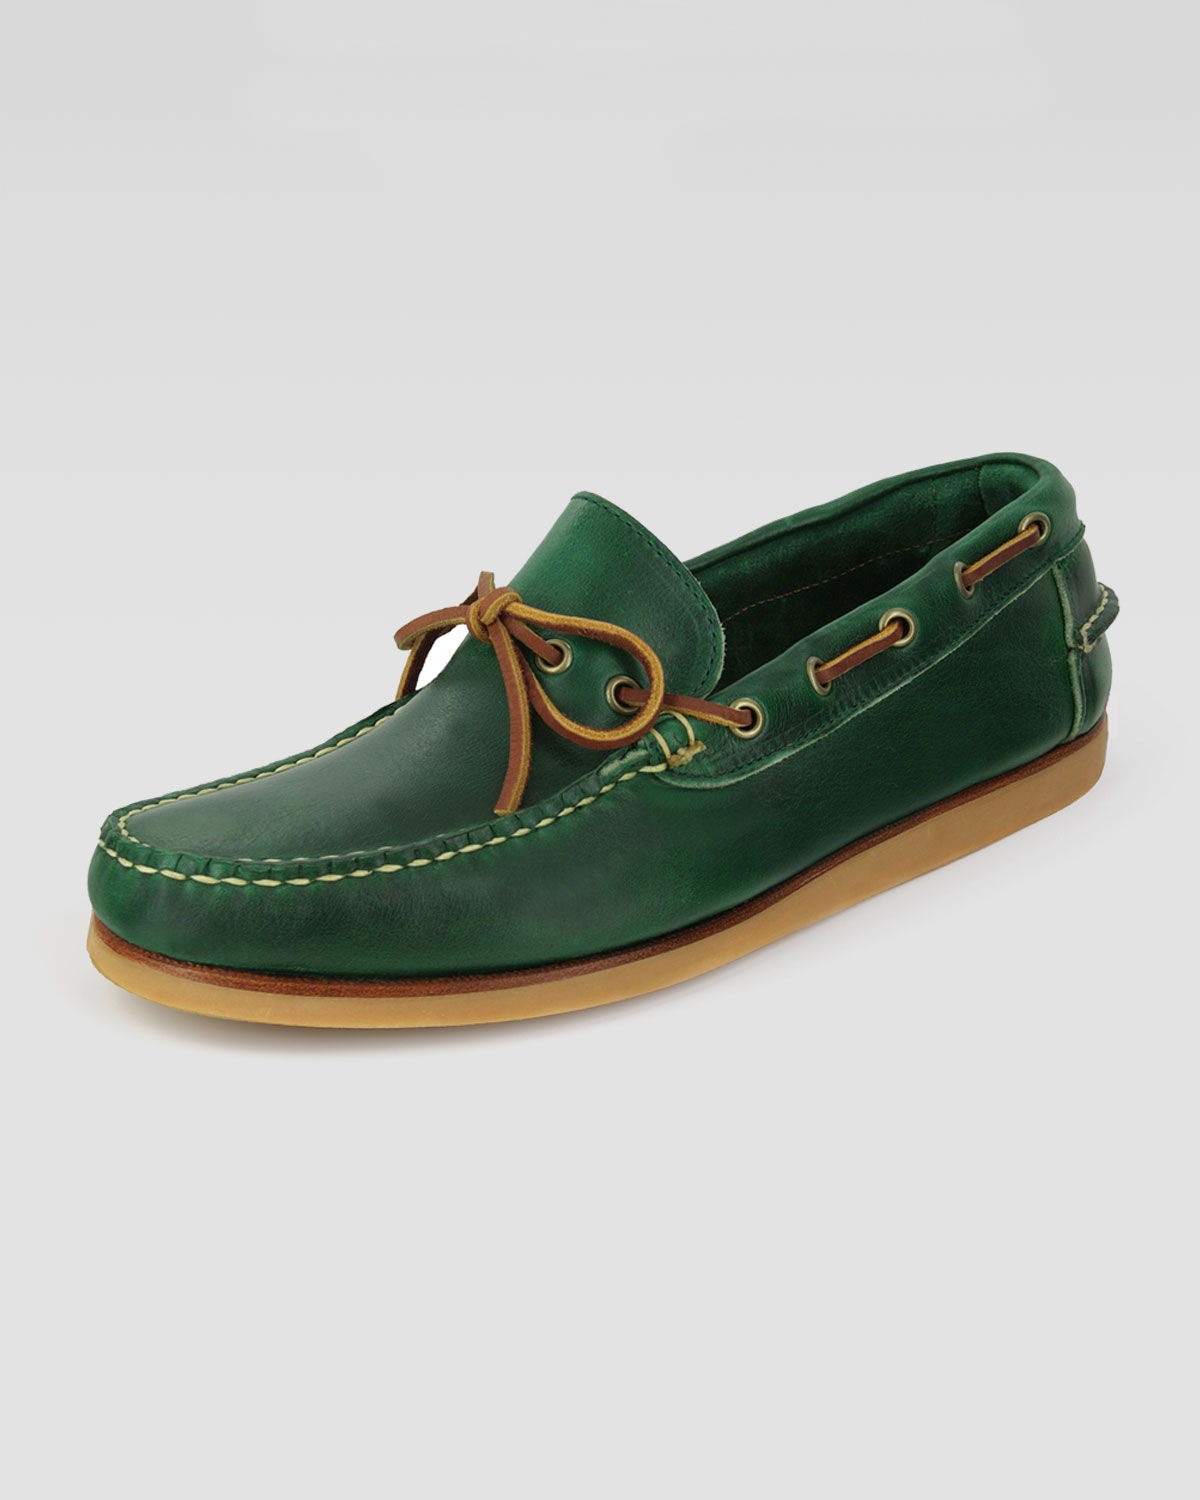 abf36472e0e Lyst - Eastland Yarmouth Boat Shoe Green in Green